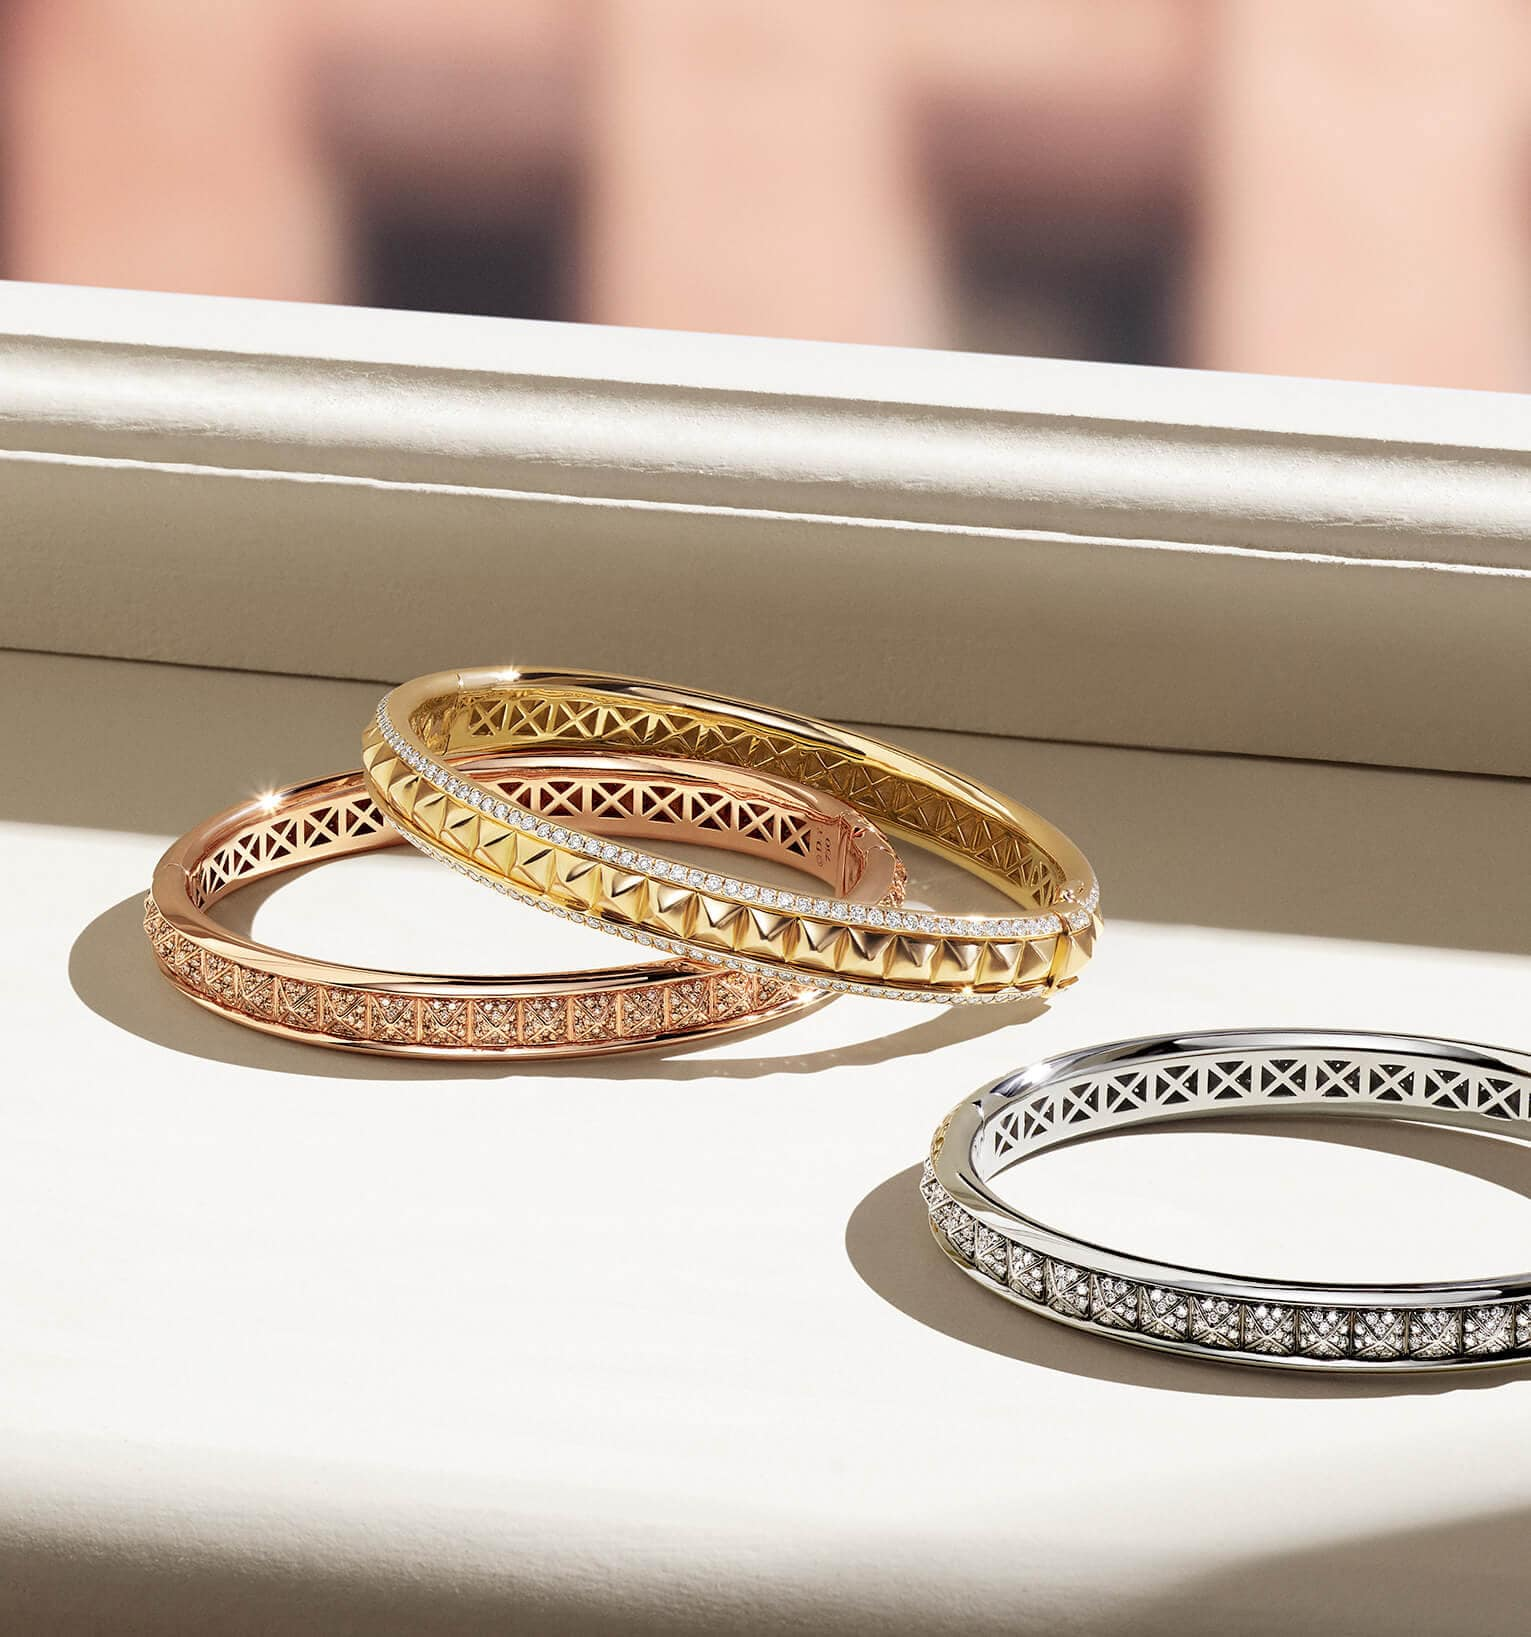 A color photo shows three David Yurman women's bracelets from the Modern Renaissance collection scattered on a white windowsill with a view of a brick building. The jewelry is crafted from 18K rose or yellow gold with cognac or white diamond accents. One bracelet is crafted from 18 white gold with white diamond accents.